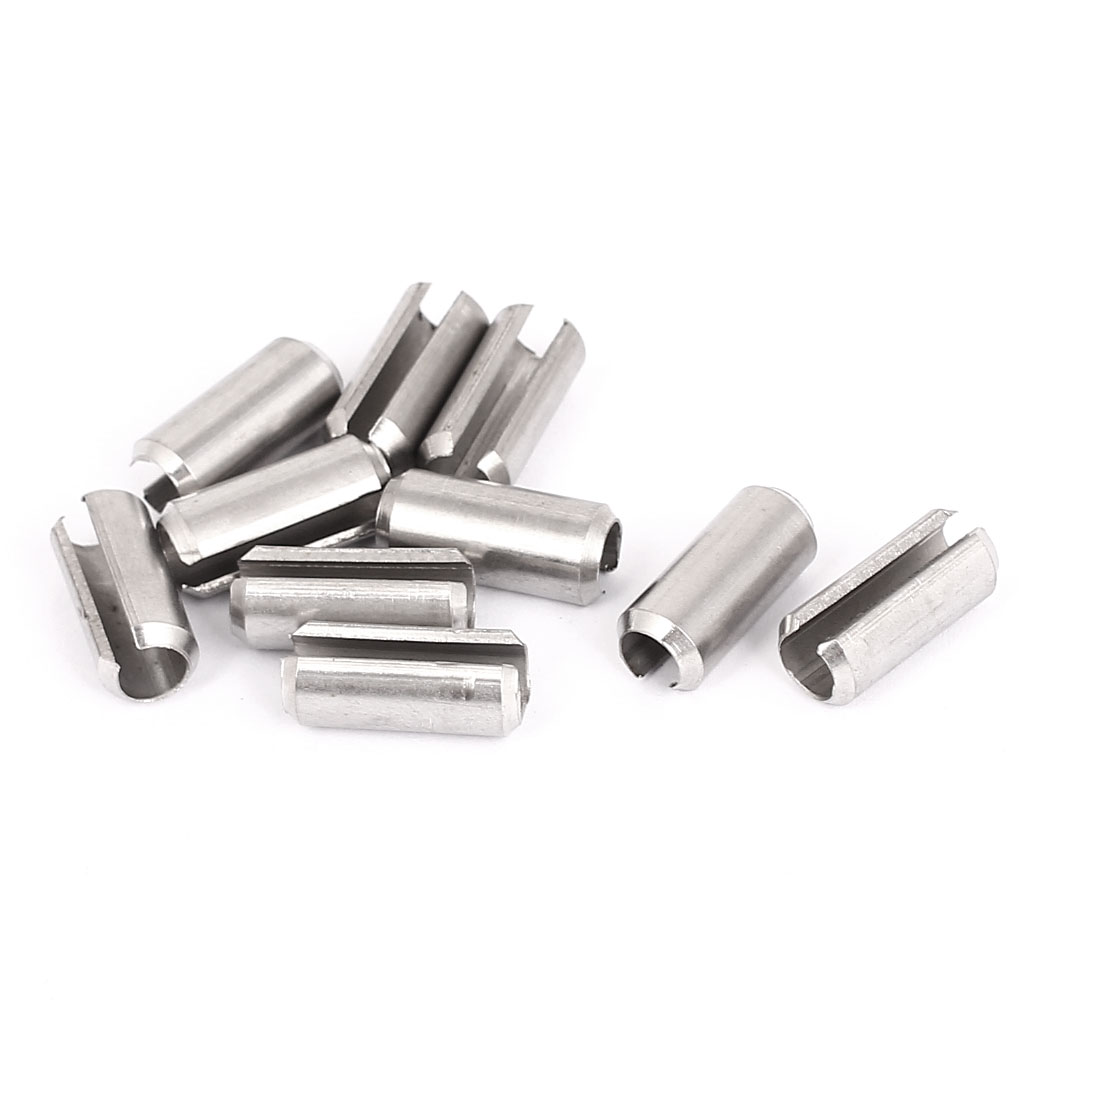 M8x20mm 304 Stainless Steel Split Spring Roll Dowel Pins Fasteners 10Pcs